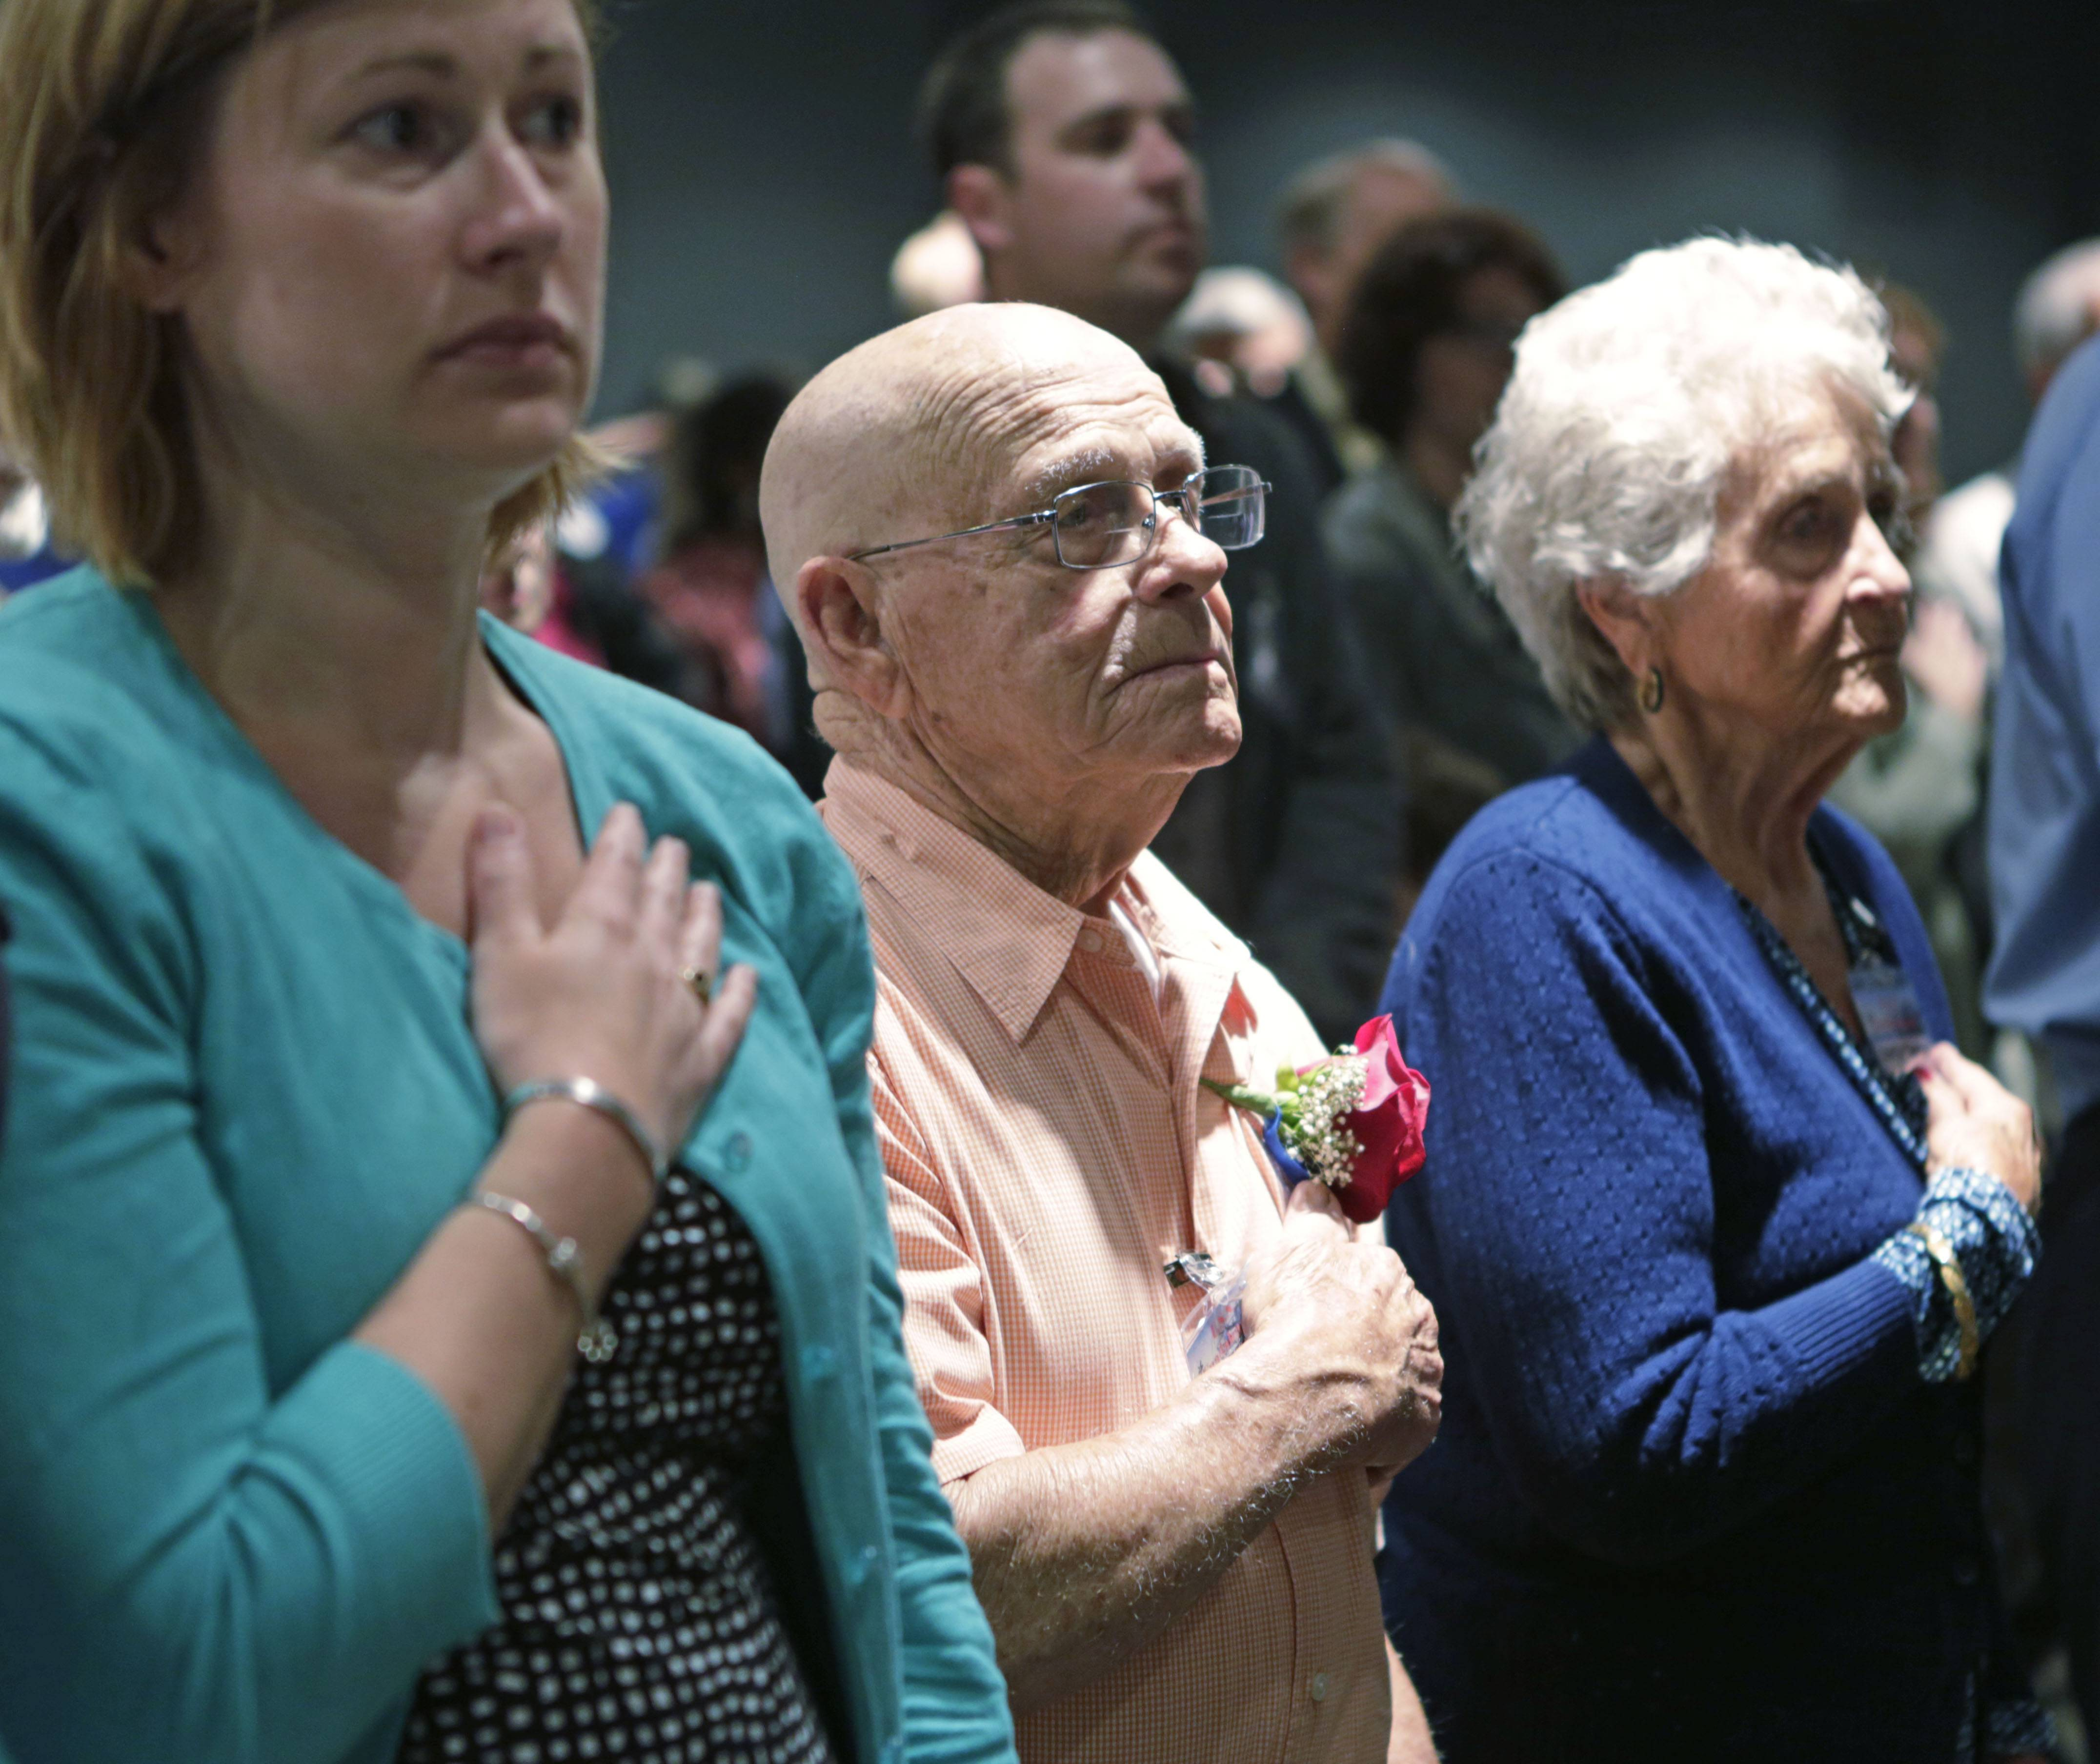 World War II veteran Doug Thrutchley, center, stands for the national anthem during a ceremony Wednesday to mark the 70th anniversary of the capture of the U-505 German submarine on display at Chicago's Museum of Science and Industry.